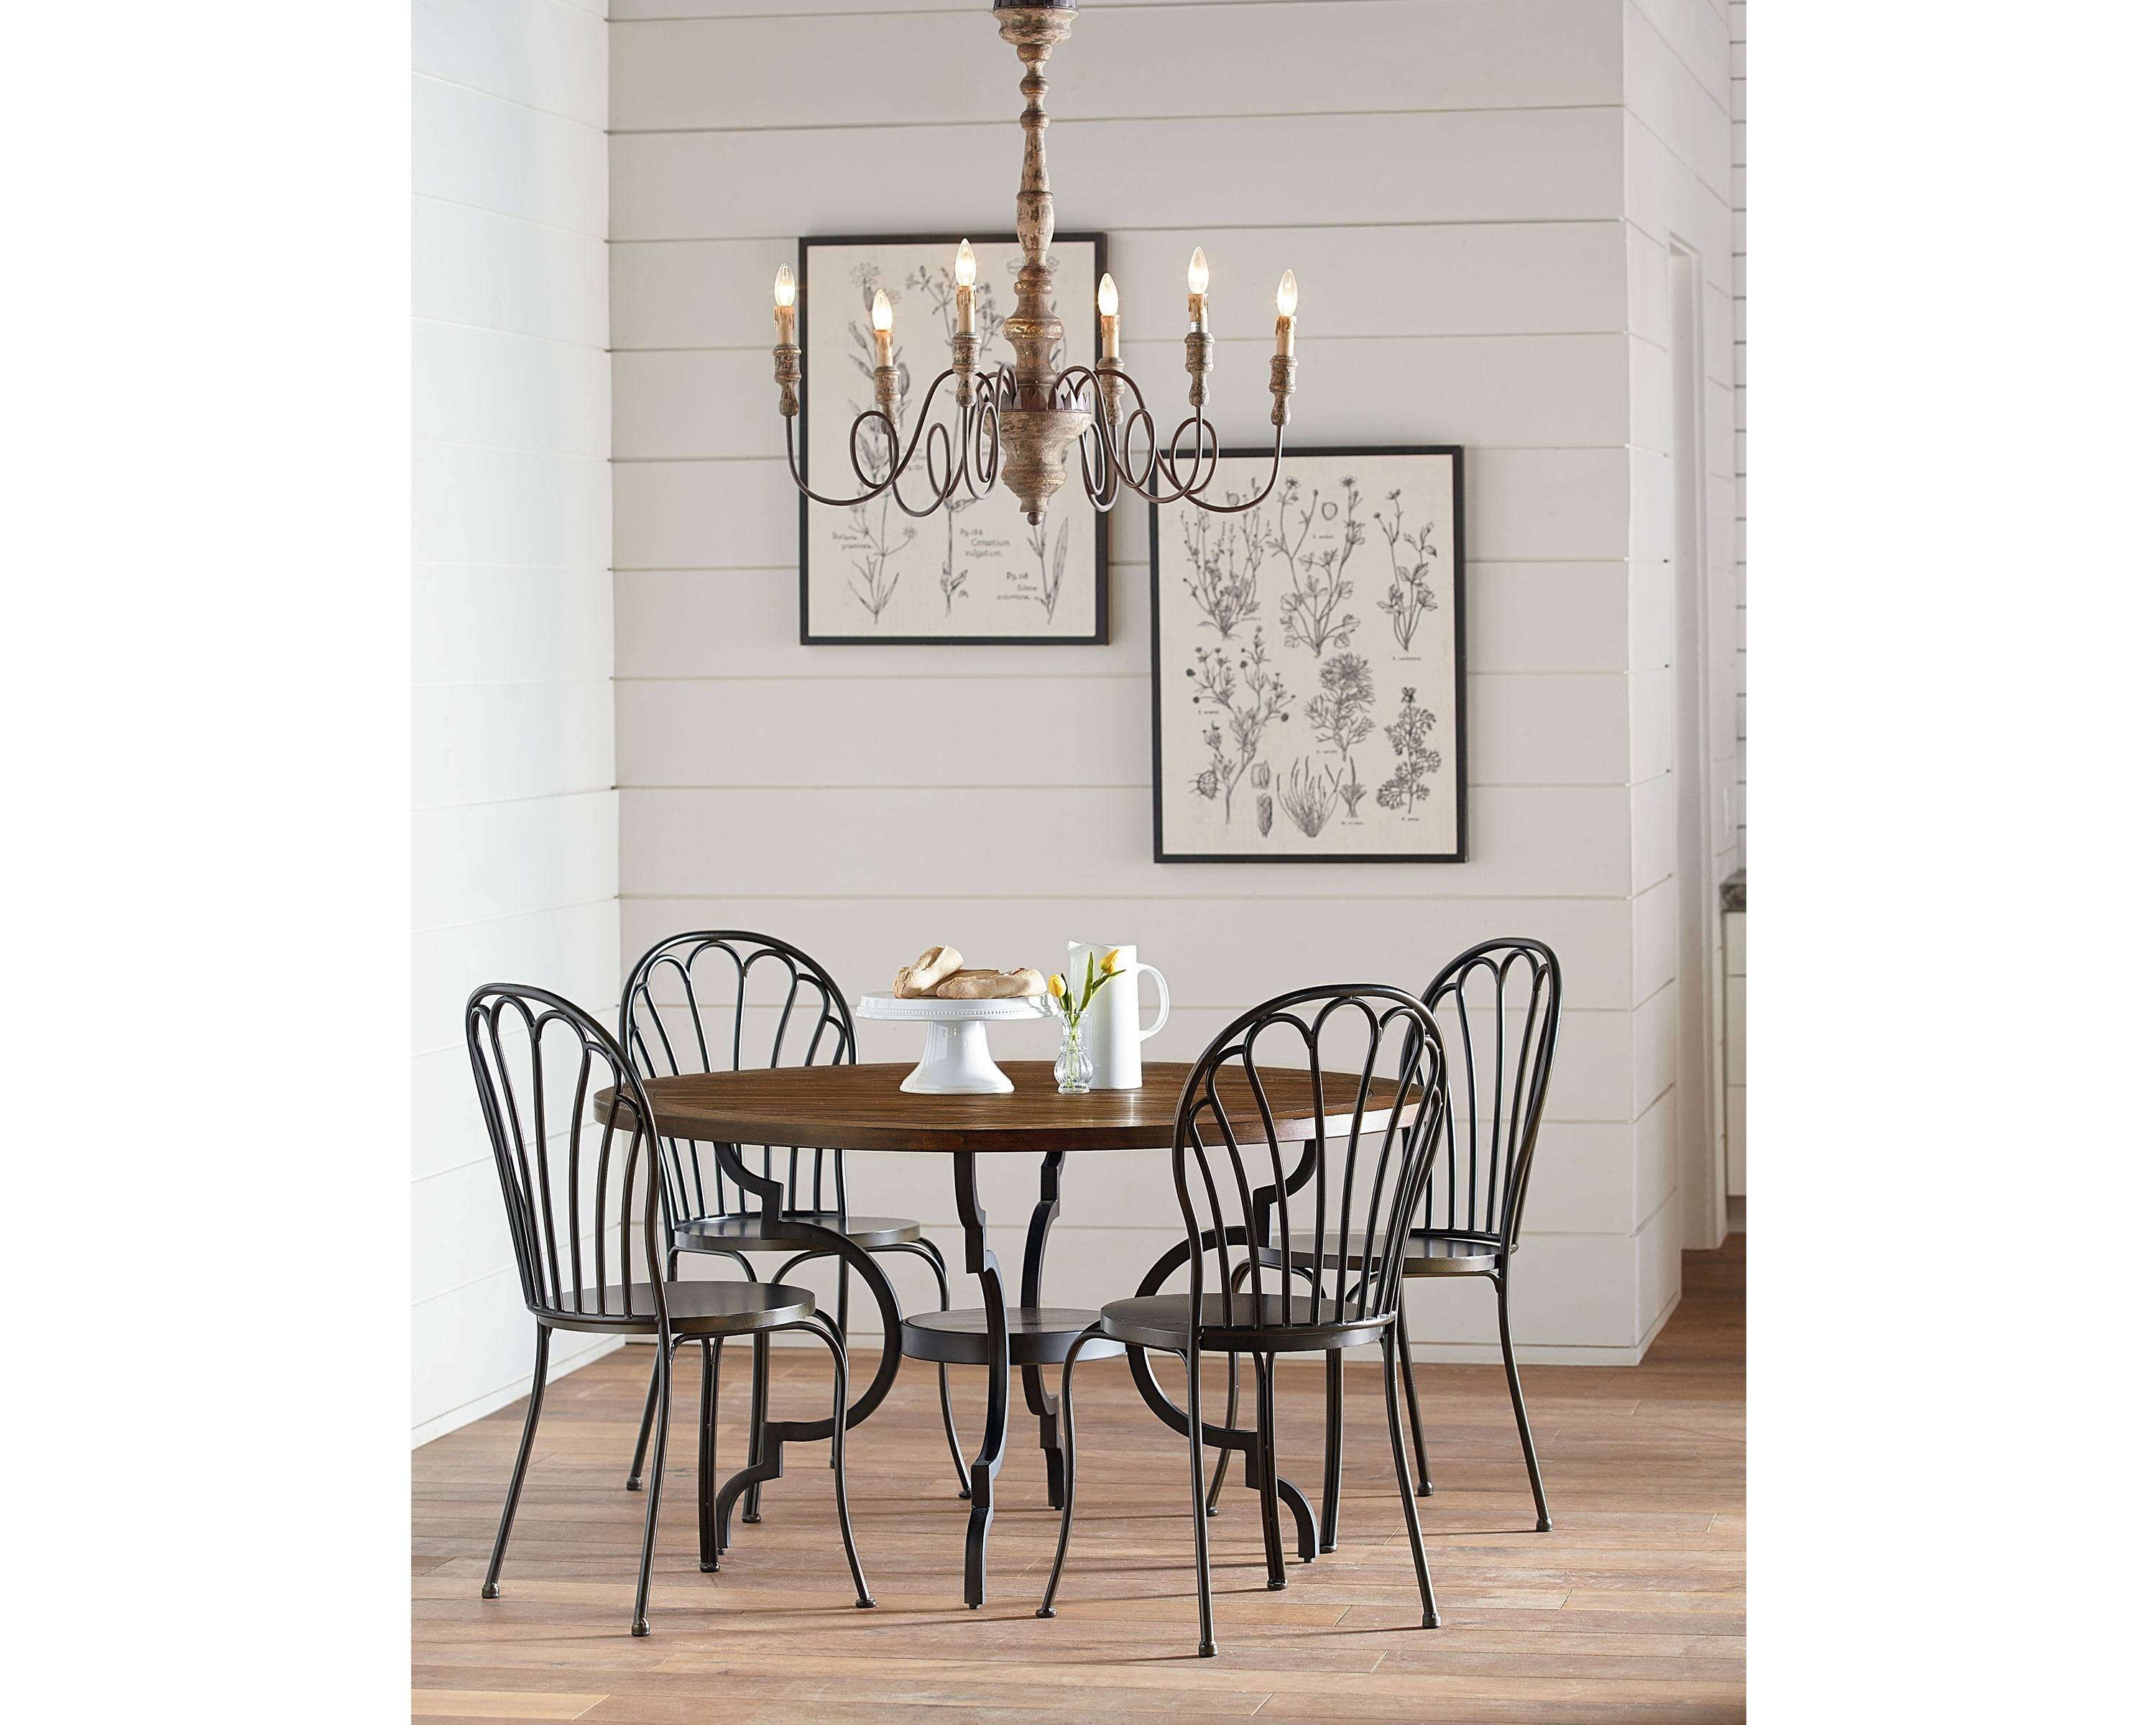 Inspiration about Well Known Magnolia Home Peacock Blackened Bronze Metal Side Chairs Throughout Breakfast + Peacock – Magnolia Home (#2 of 20)